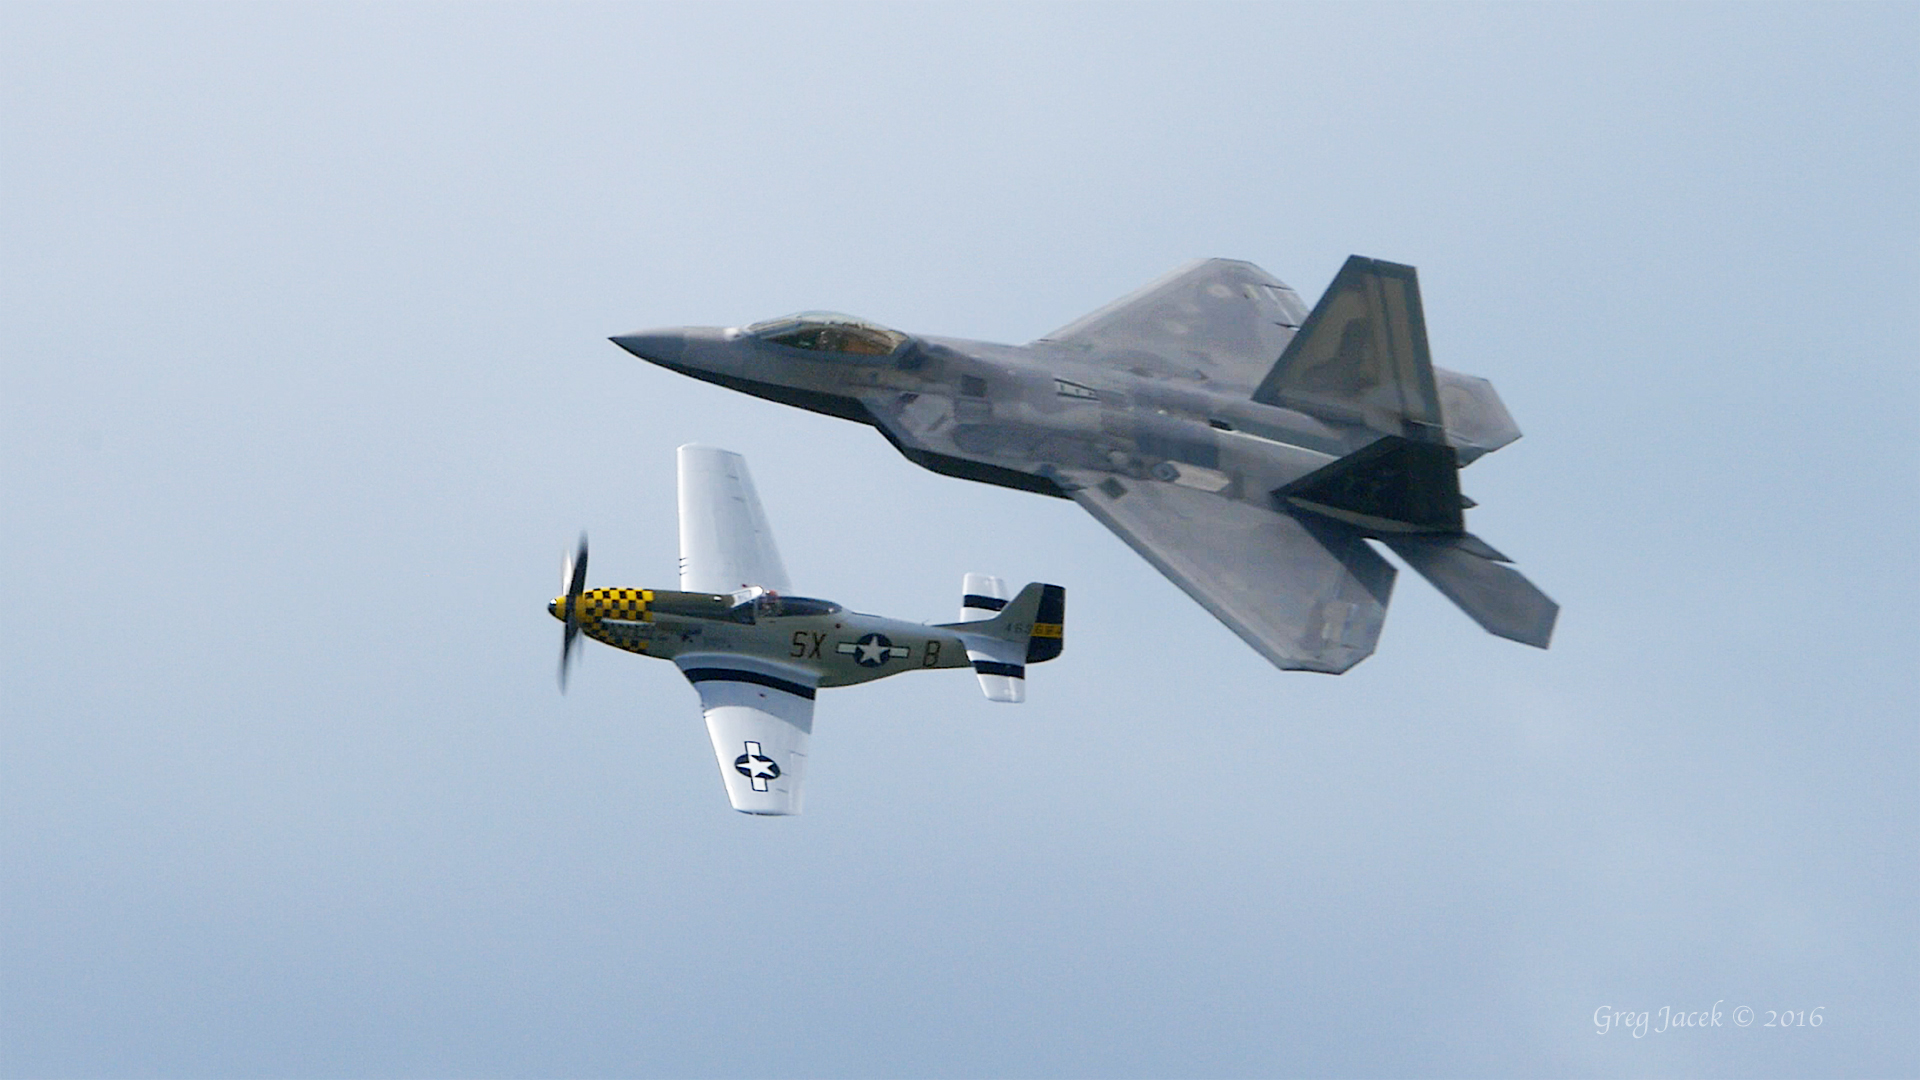 ACC F-22 Raptor Demo Team Featured my Video on Their Official Facebook Page!